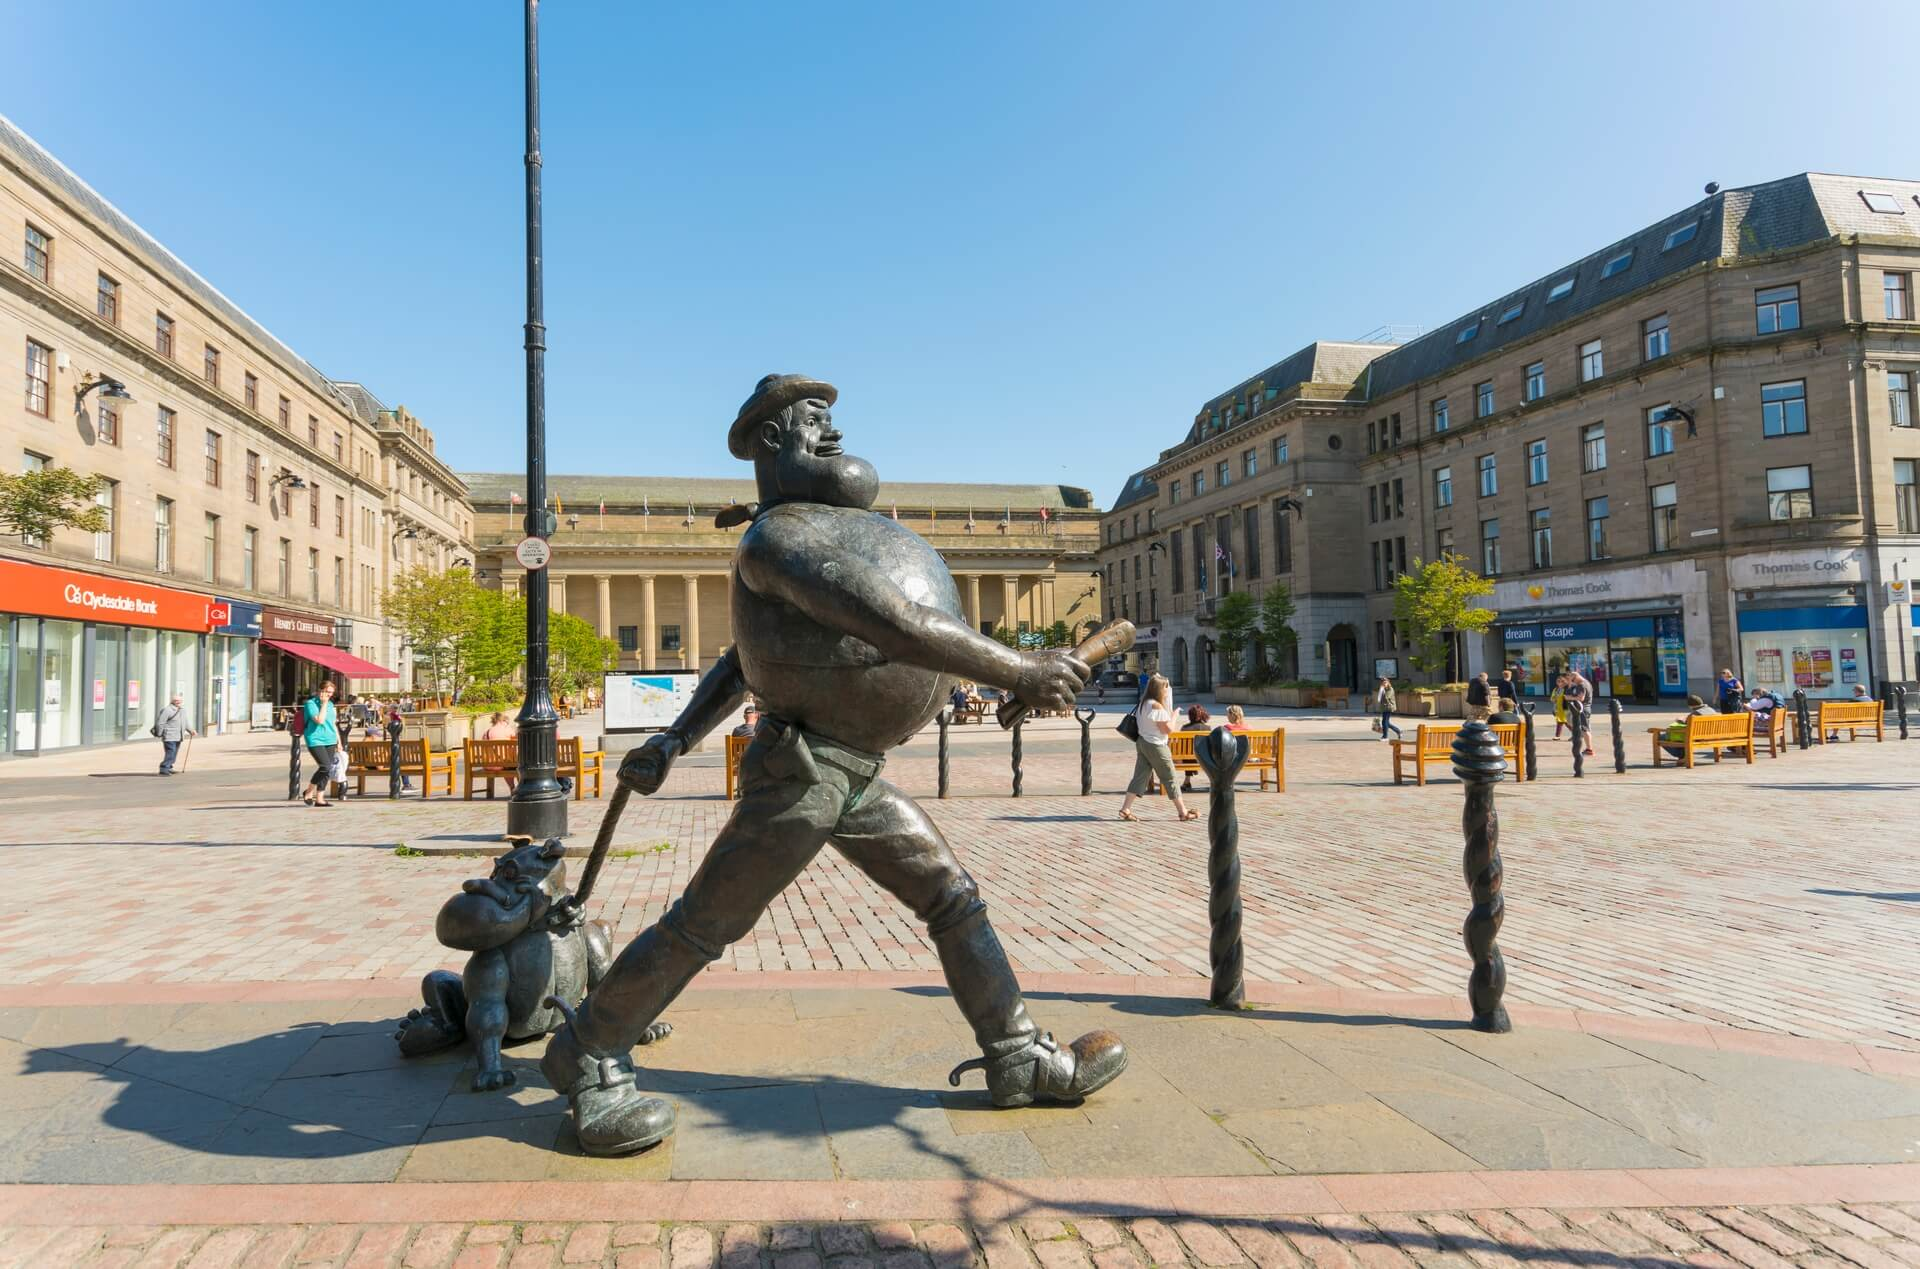 Desperate Dan Statue By Dundee City Square And The Caird Hall